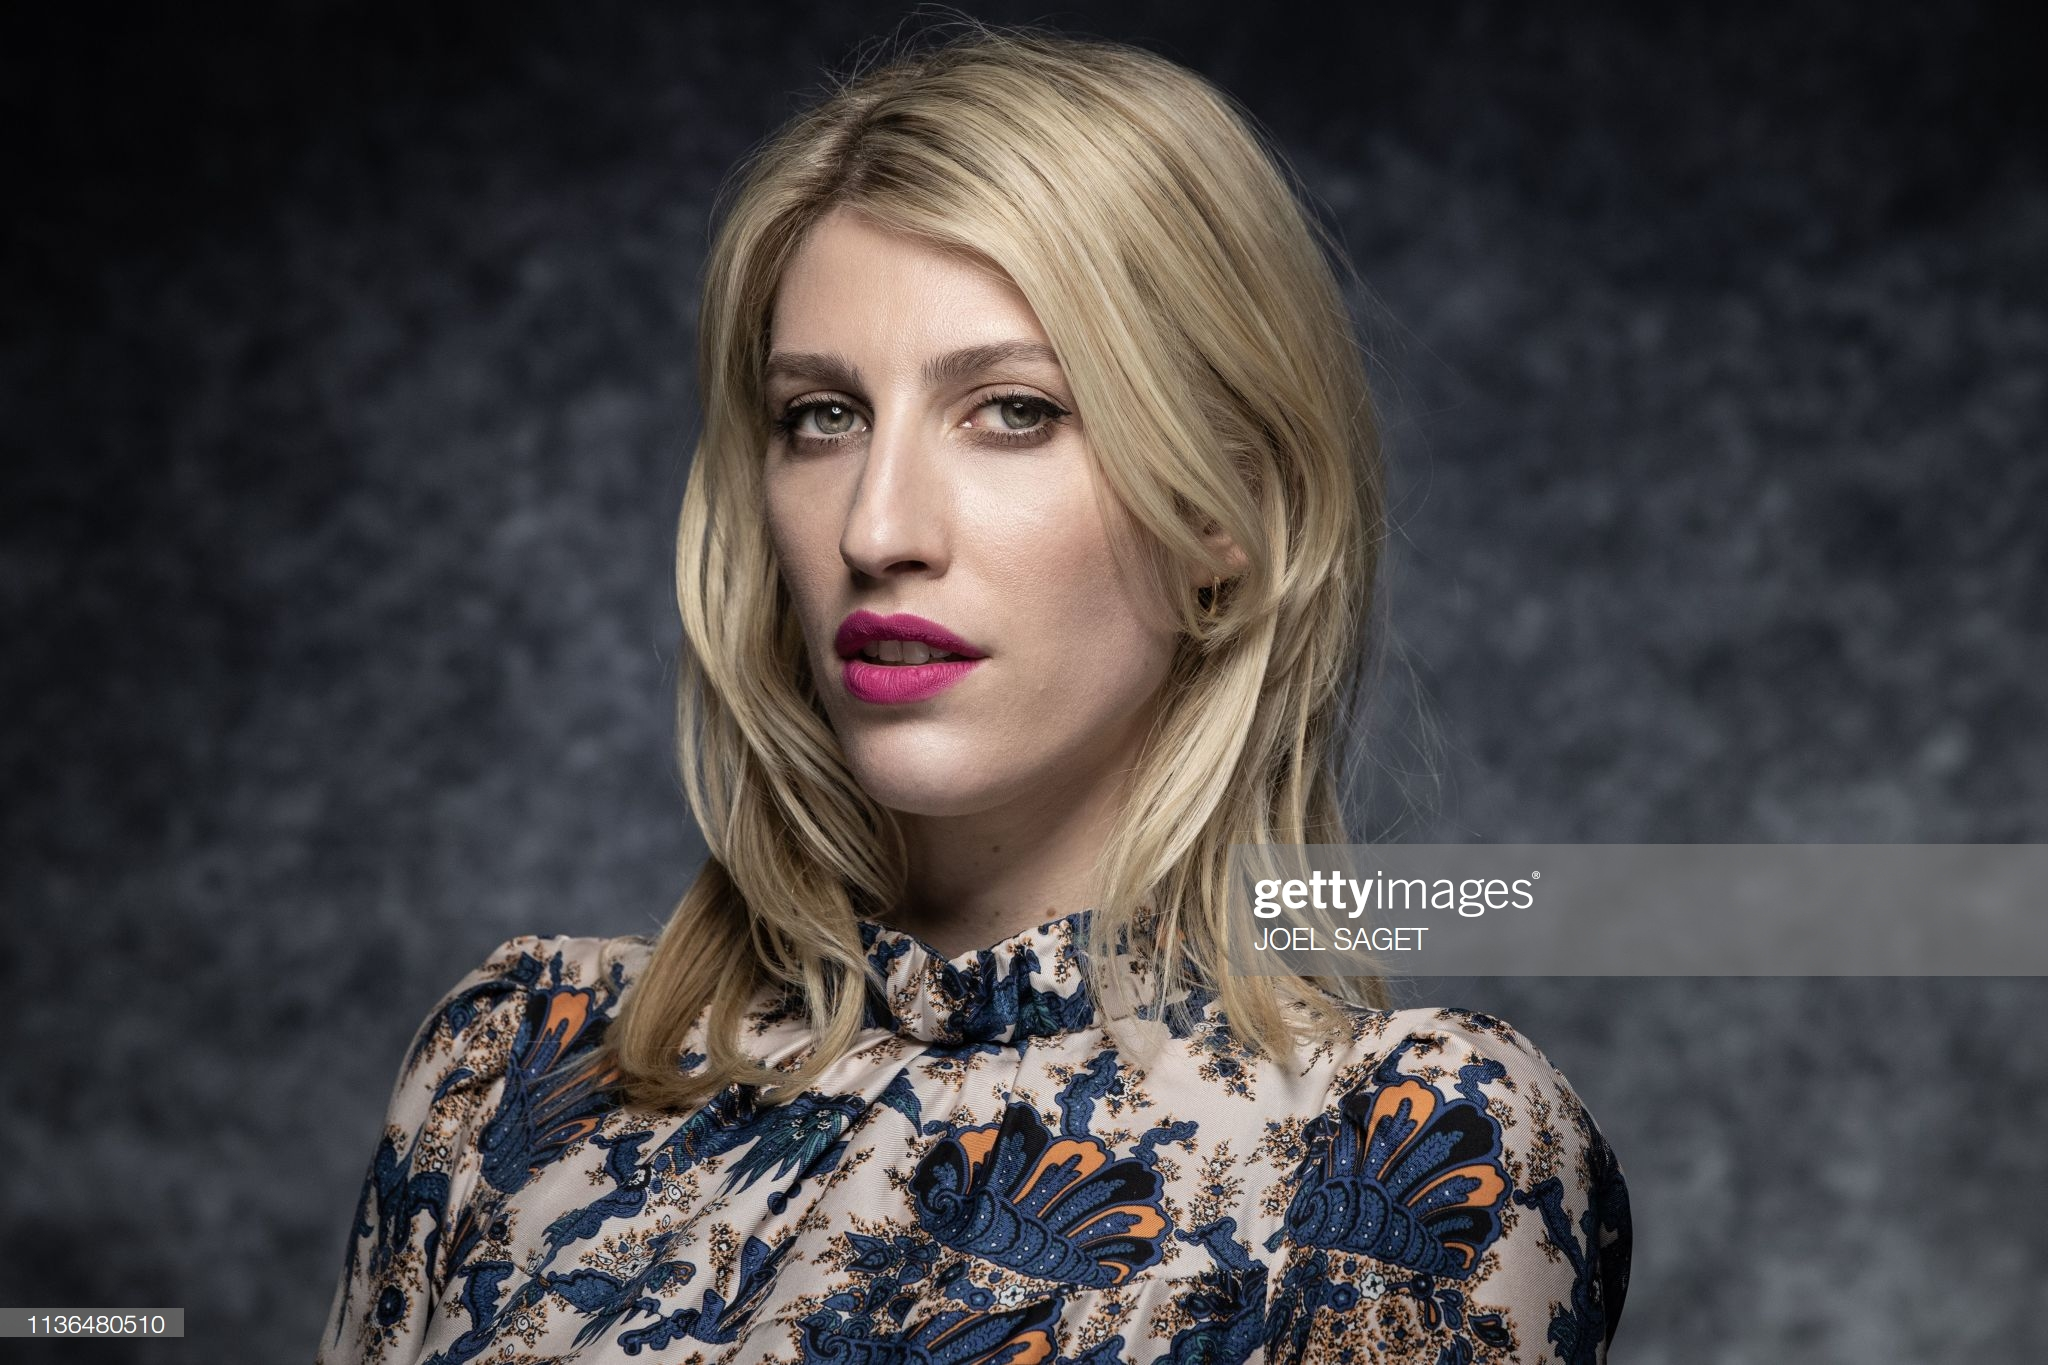 US writer, television host, and producer Karley Sciortino poses during a photo session during the 2nd edition of the Cannes International Series Festival (Canneseries) on April 10, 2019 in Cannes, southern France. (Photo by JOEL SAGET / AFP)        (Photo credit should read JOEL SAGET/AFP/Getty Images)